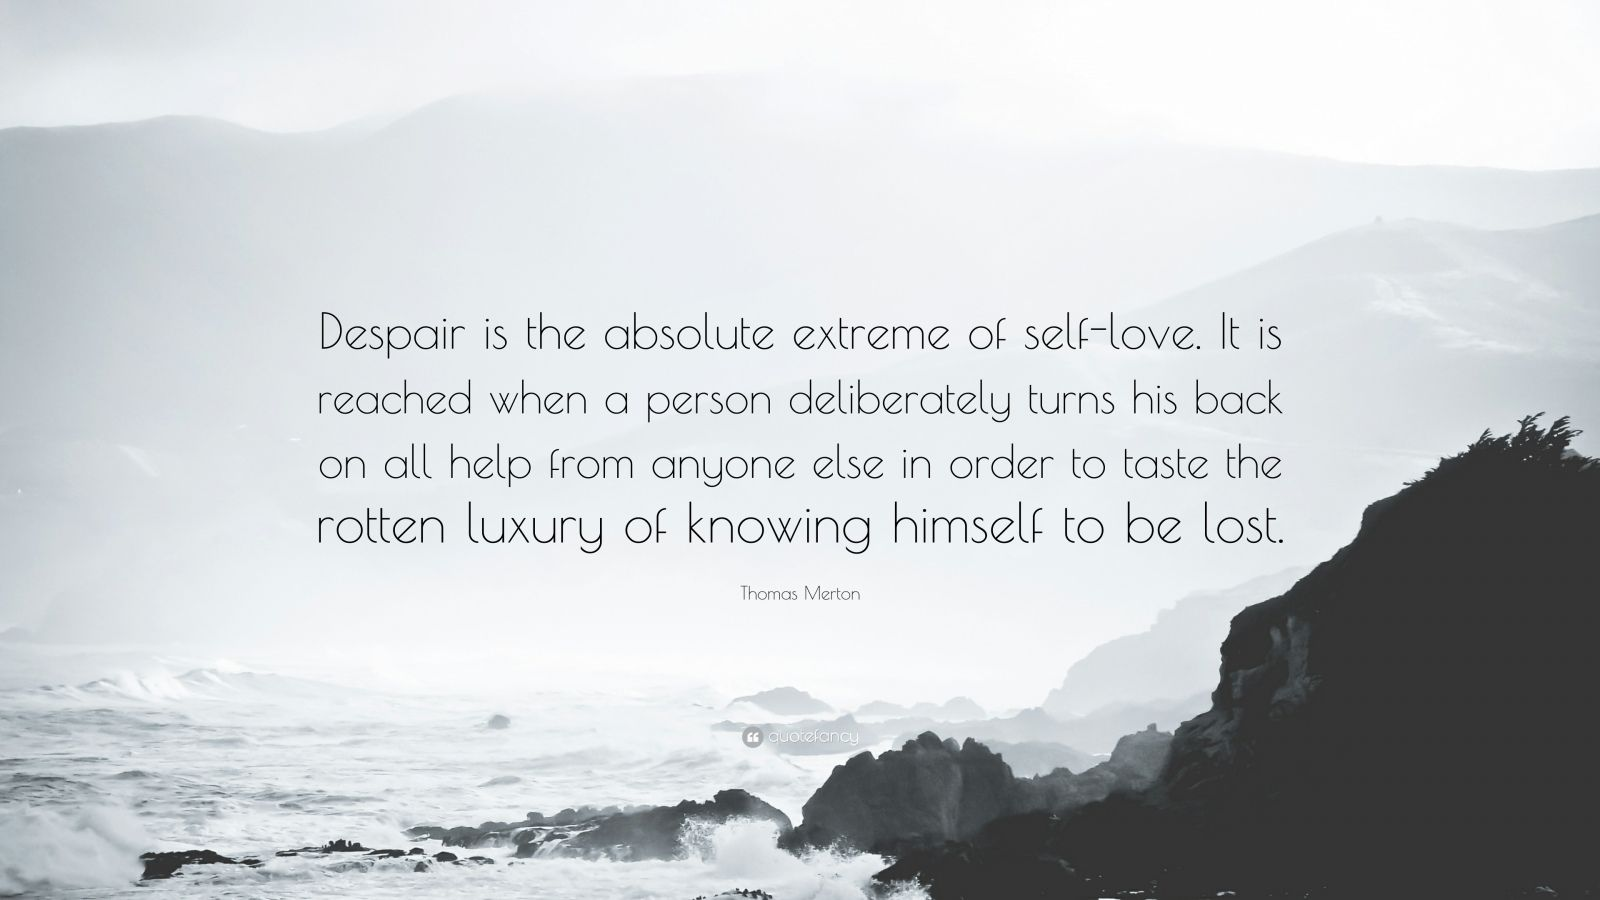 """Thomas Merton Quote: """"Despair is the absolute extreme of self-love. It is reached when a person deliberately turns his back on all help from anyone else in order to taste the rotten luxury of knowing himself to be lost."""""""